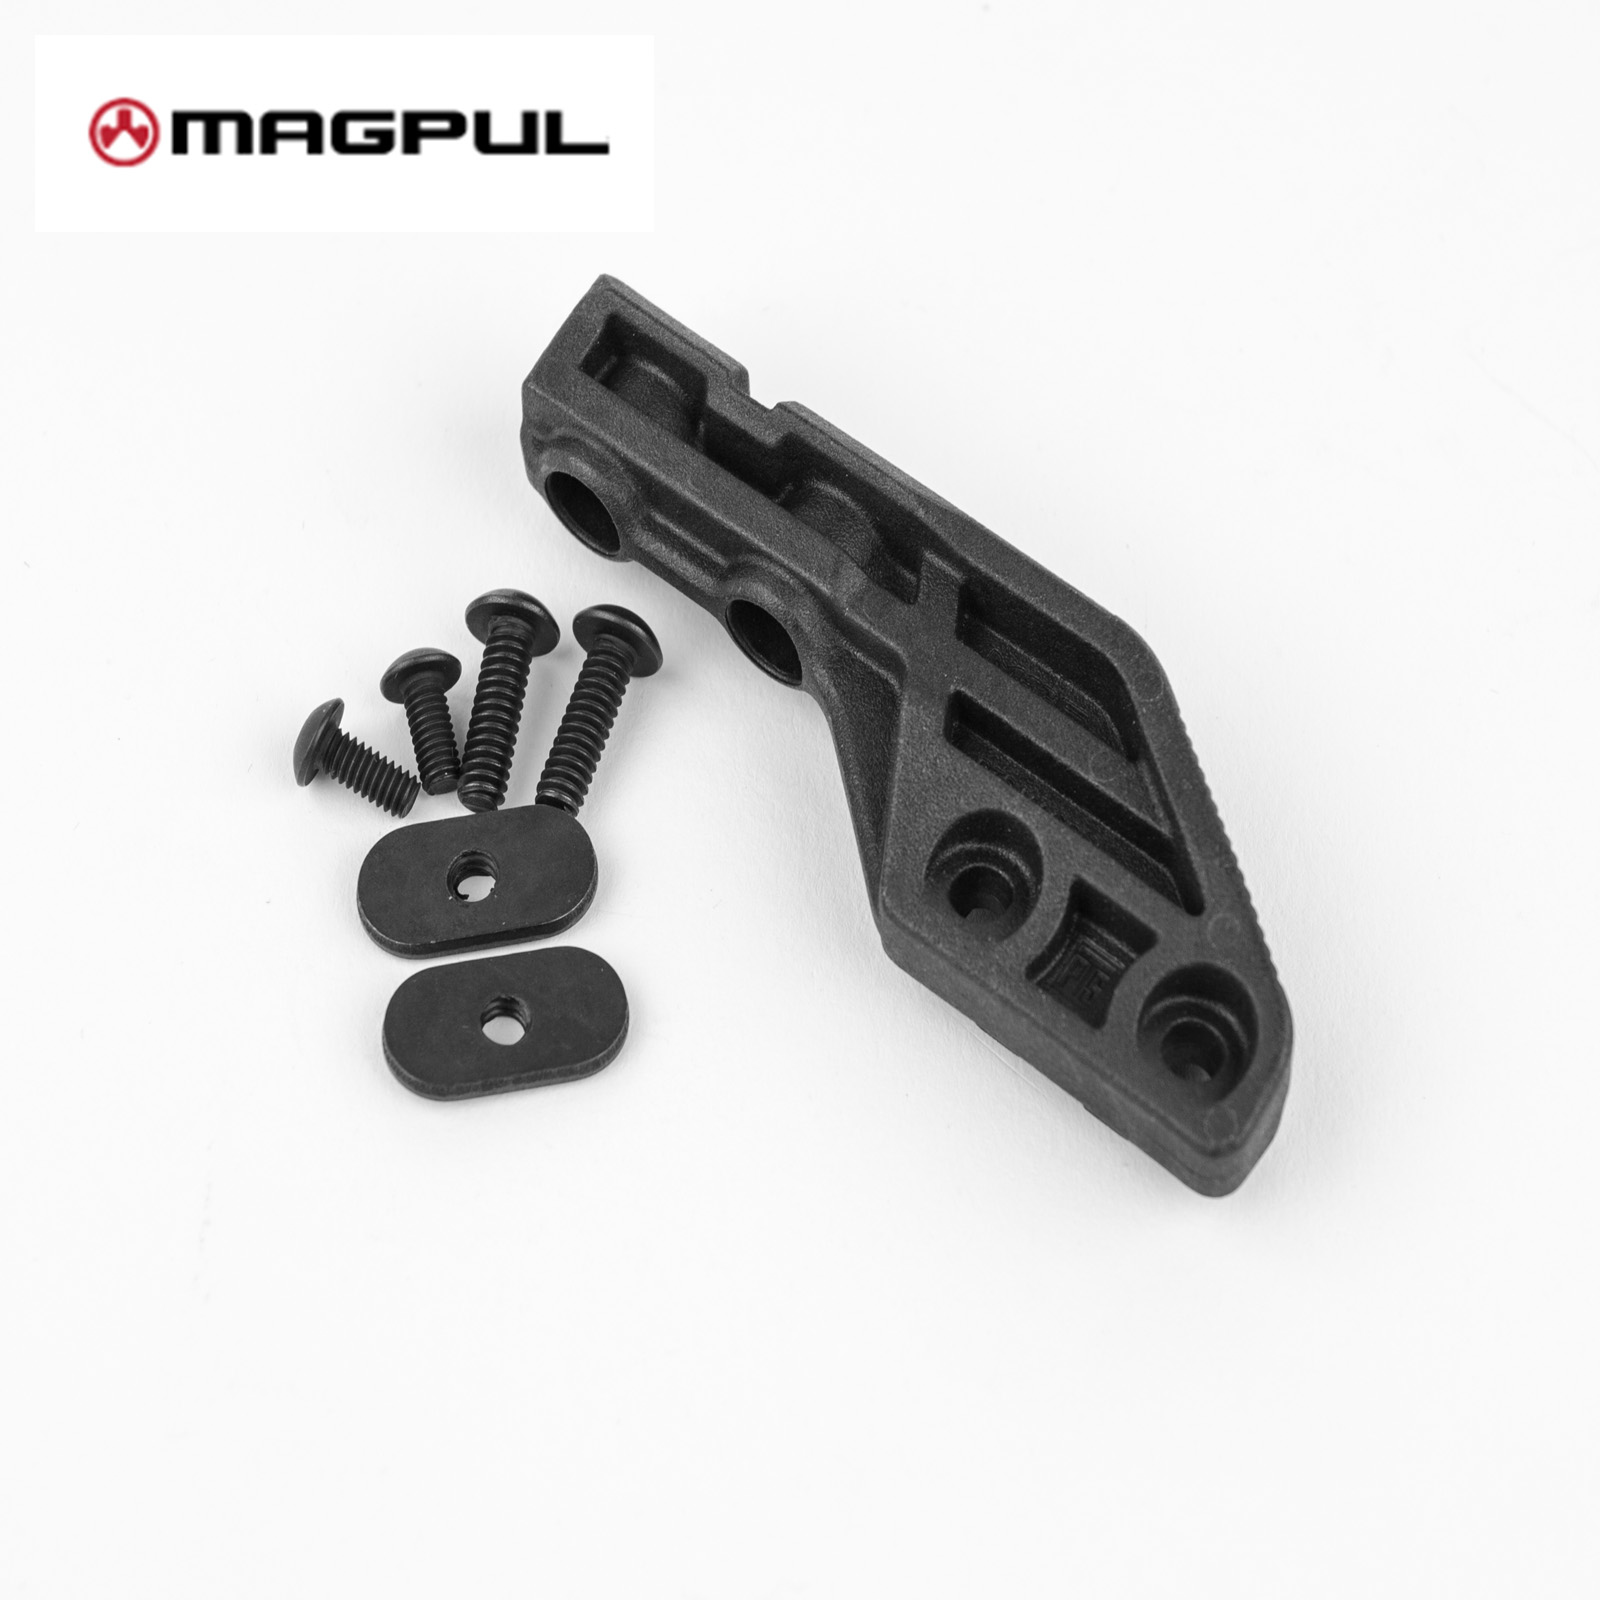 MOE Scout Mount Left MAGPUL PTS